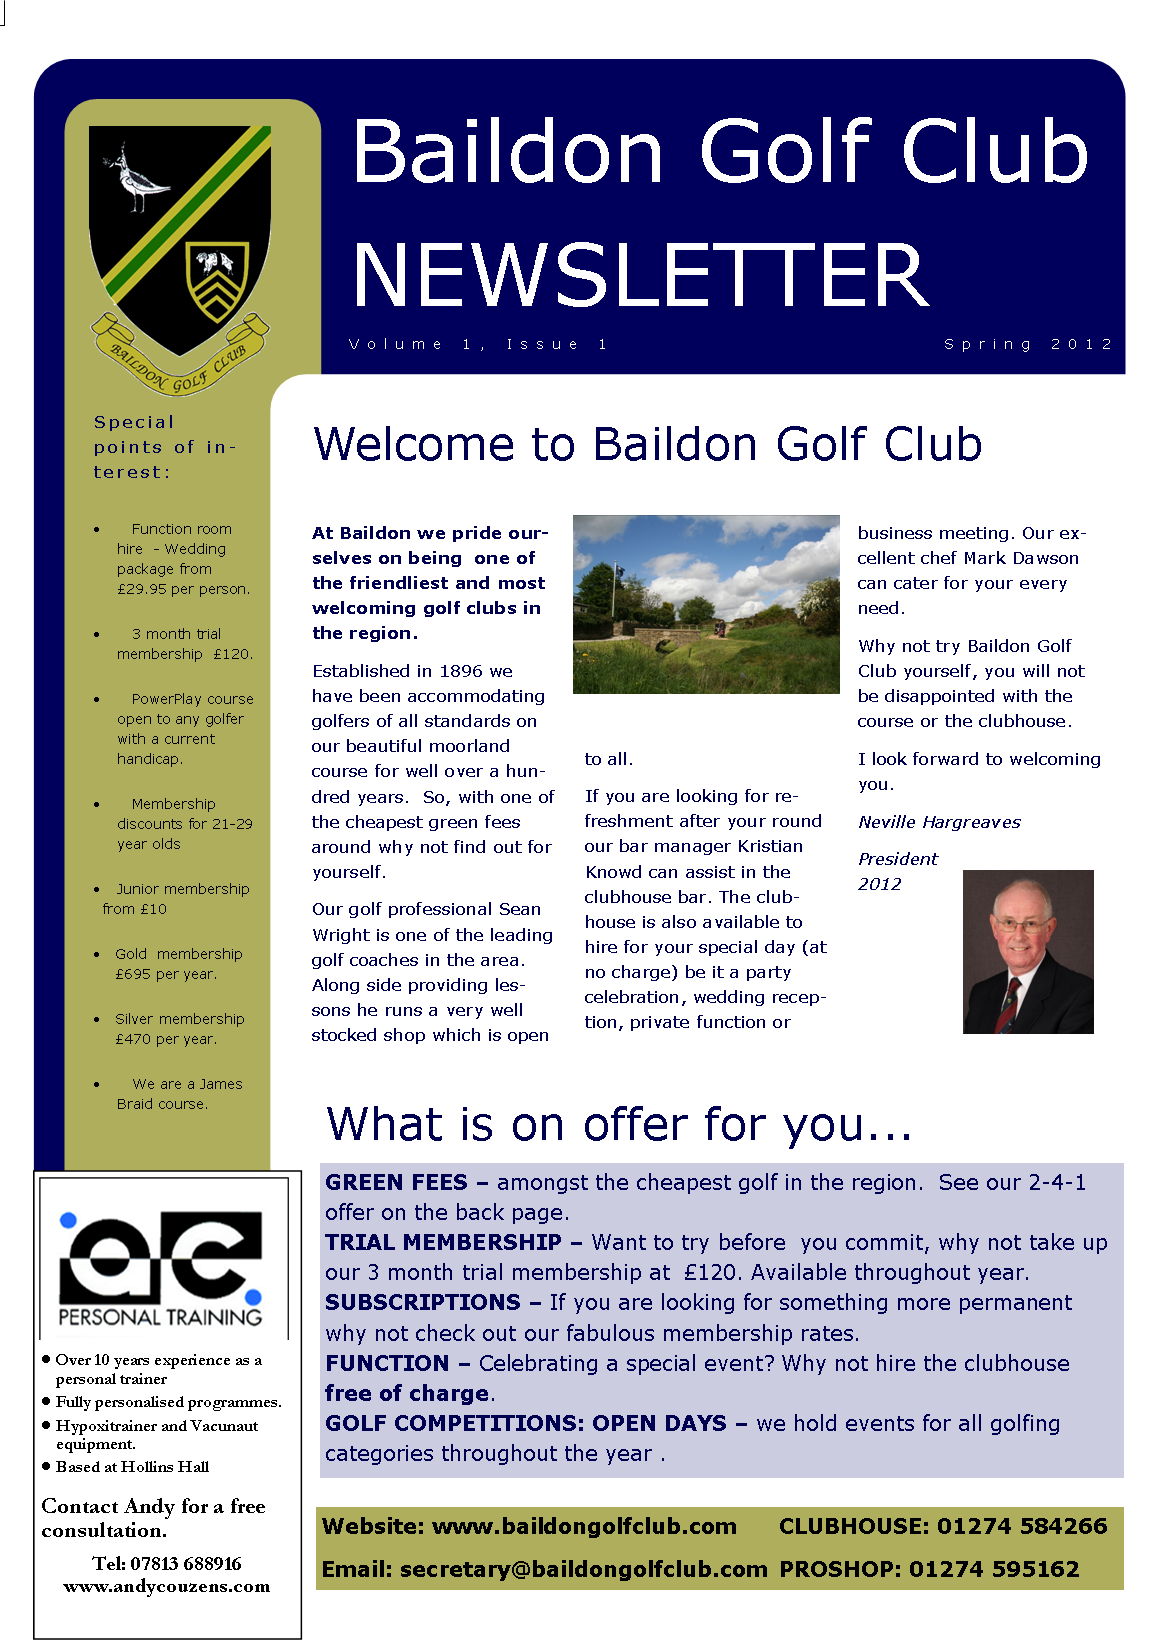 Newsletter Spring 2012 Baildon Golf Club West Yorkshire